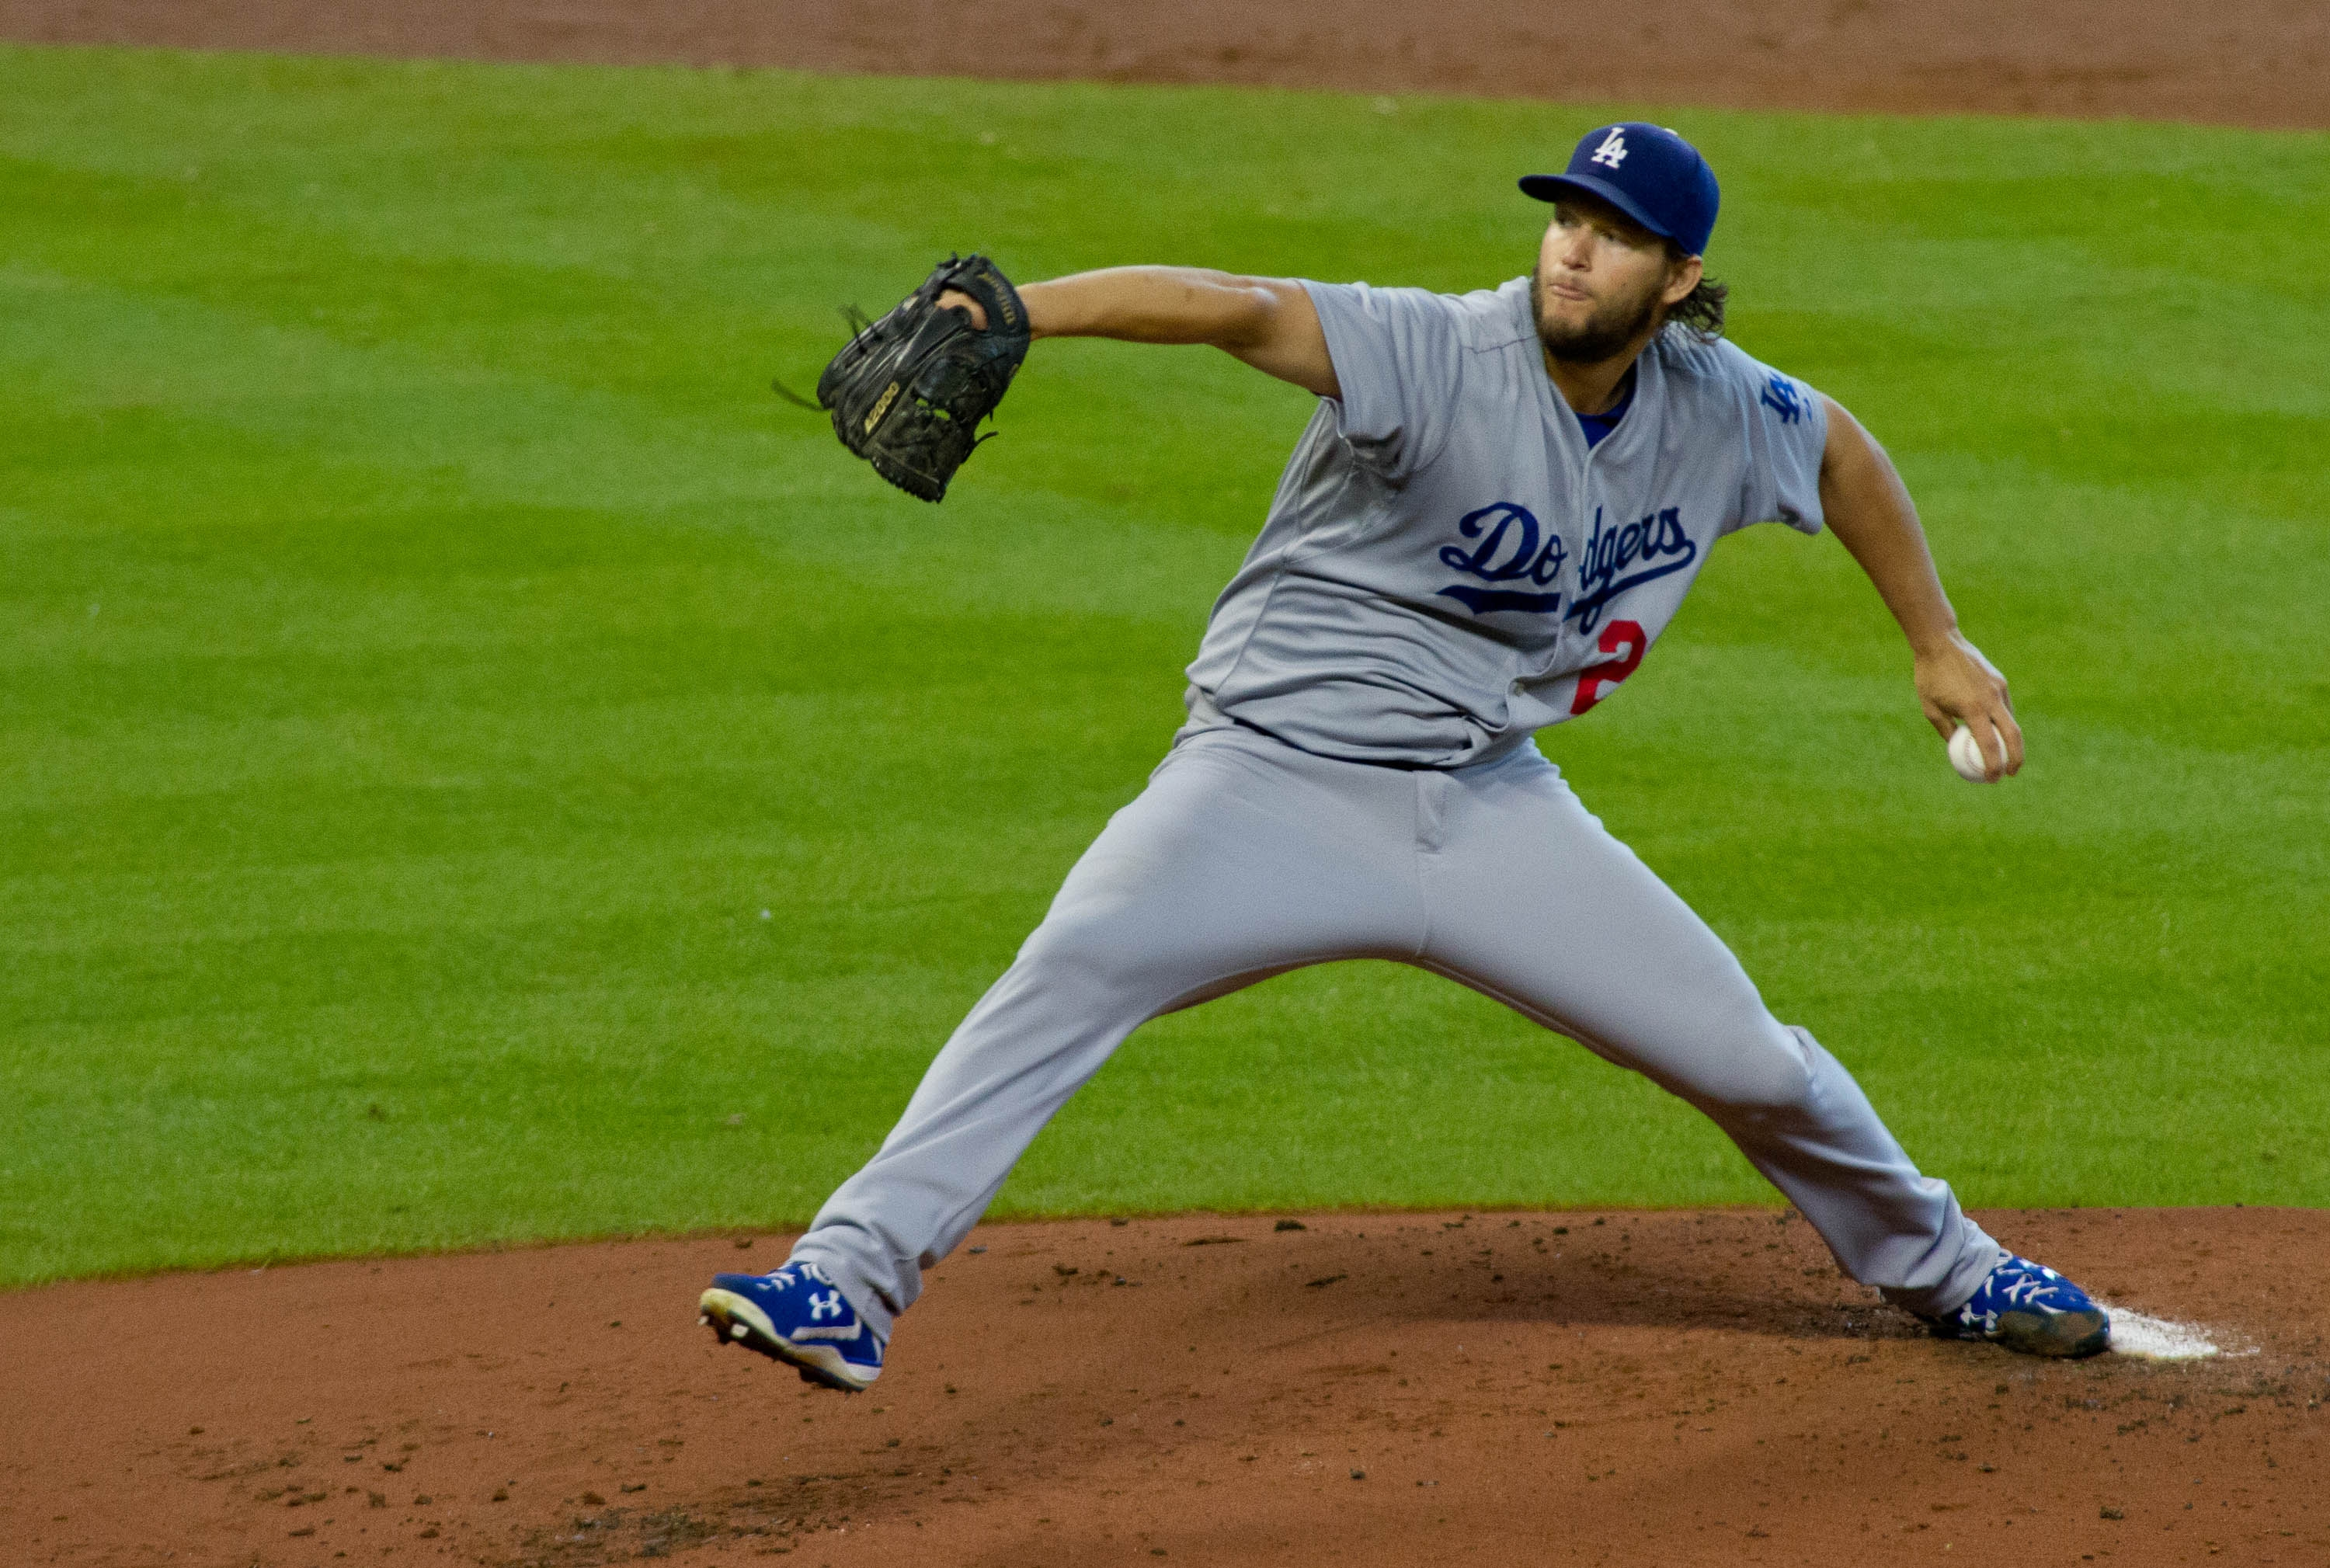 Los Angeles Dodgers pitcher Clayton Kershaw delivers a pitch against the Houston Astros in the first inning of a baseball game Sunday, Aug. 23, 2015, in Houston.  (AP Photo/Richard Carson)